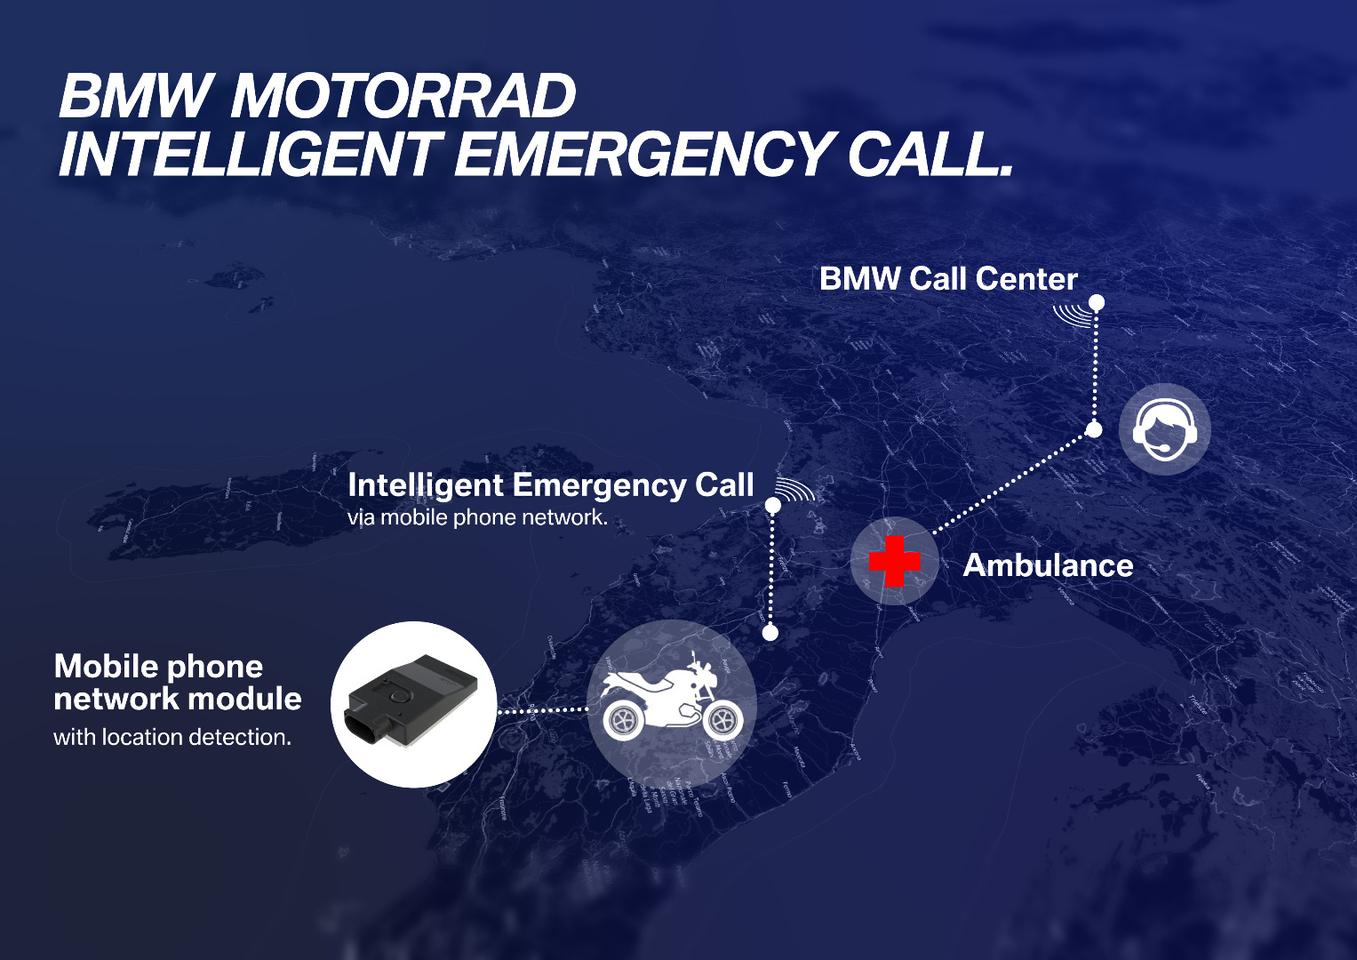 The Intelligent Emergency Call system has shown impressive results in response times during trial runs across Europe